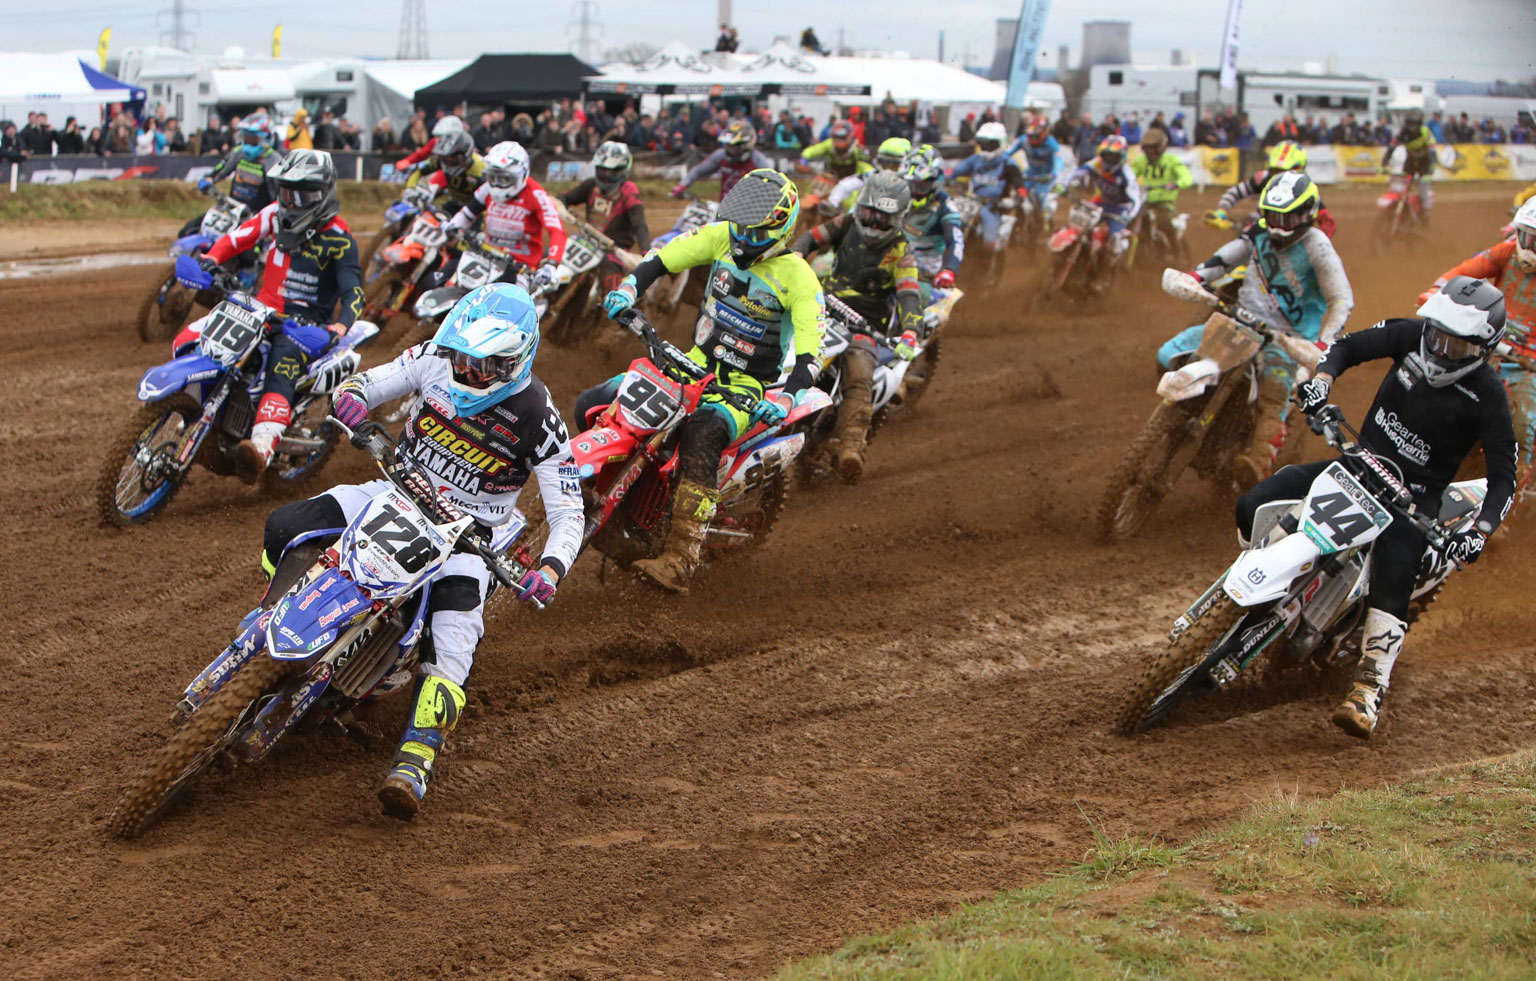 Ivo Monticelli leads the pack in the second MX1 moto